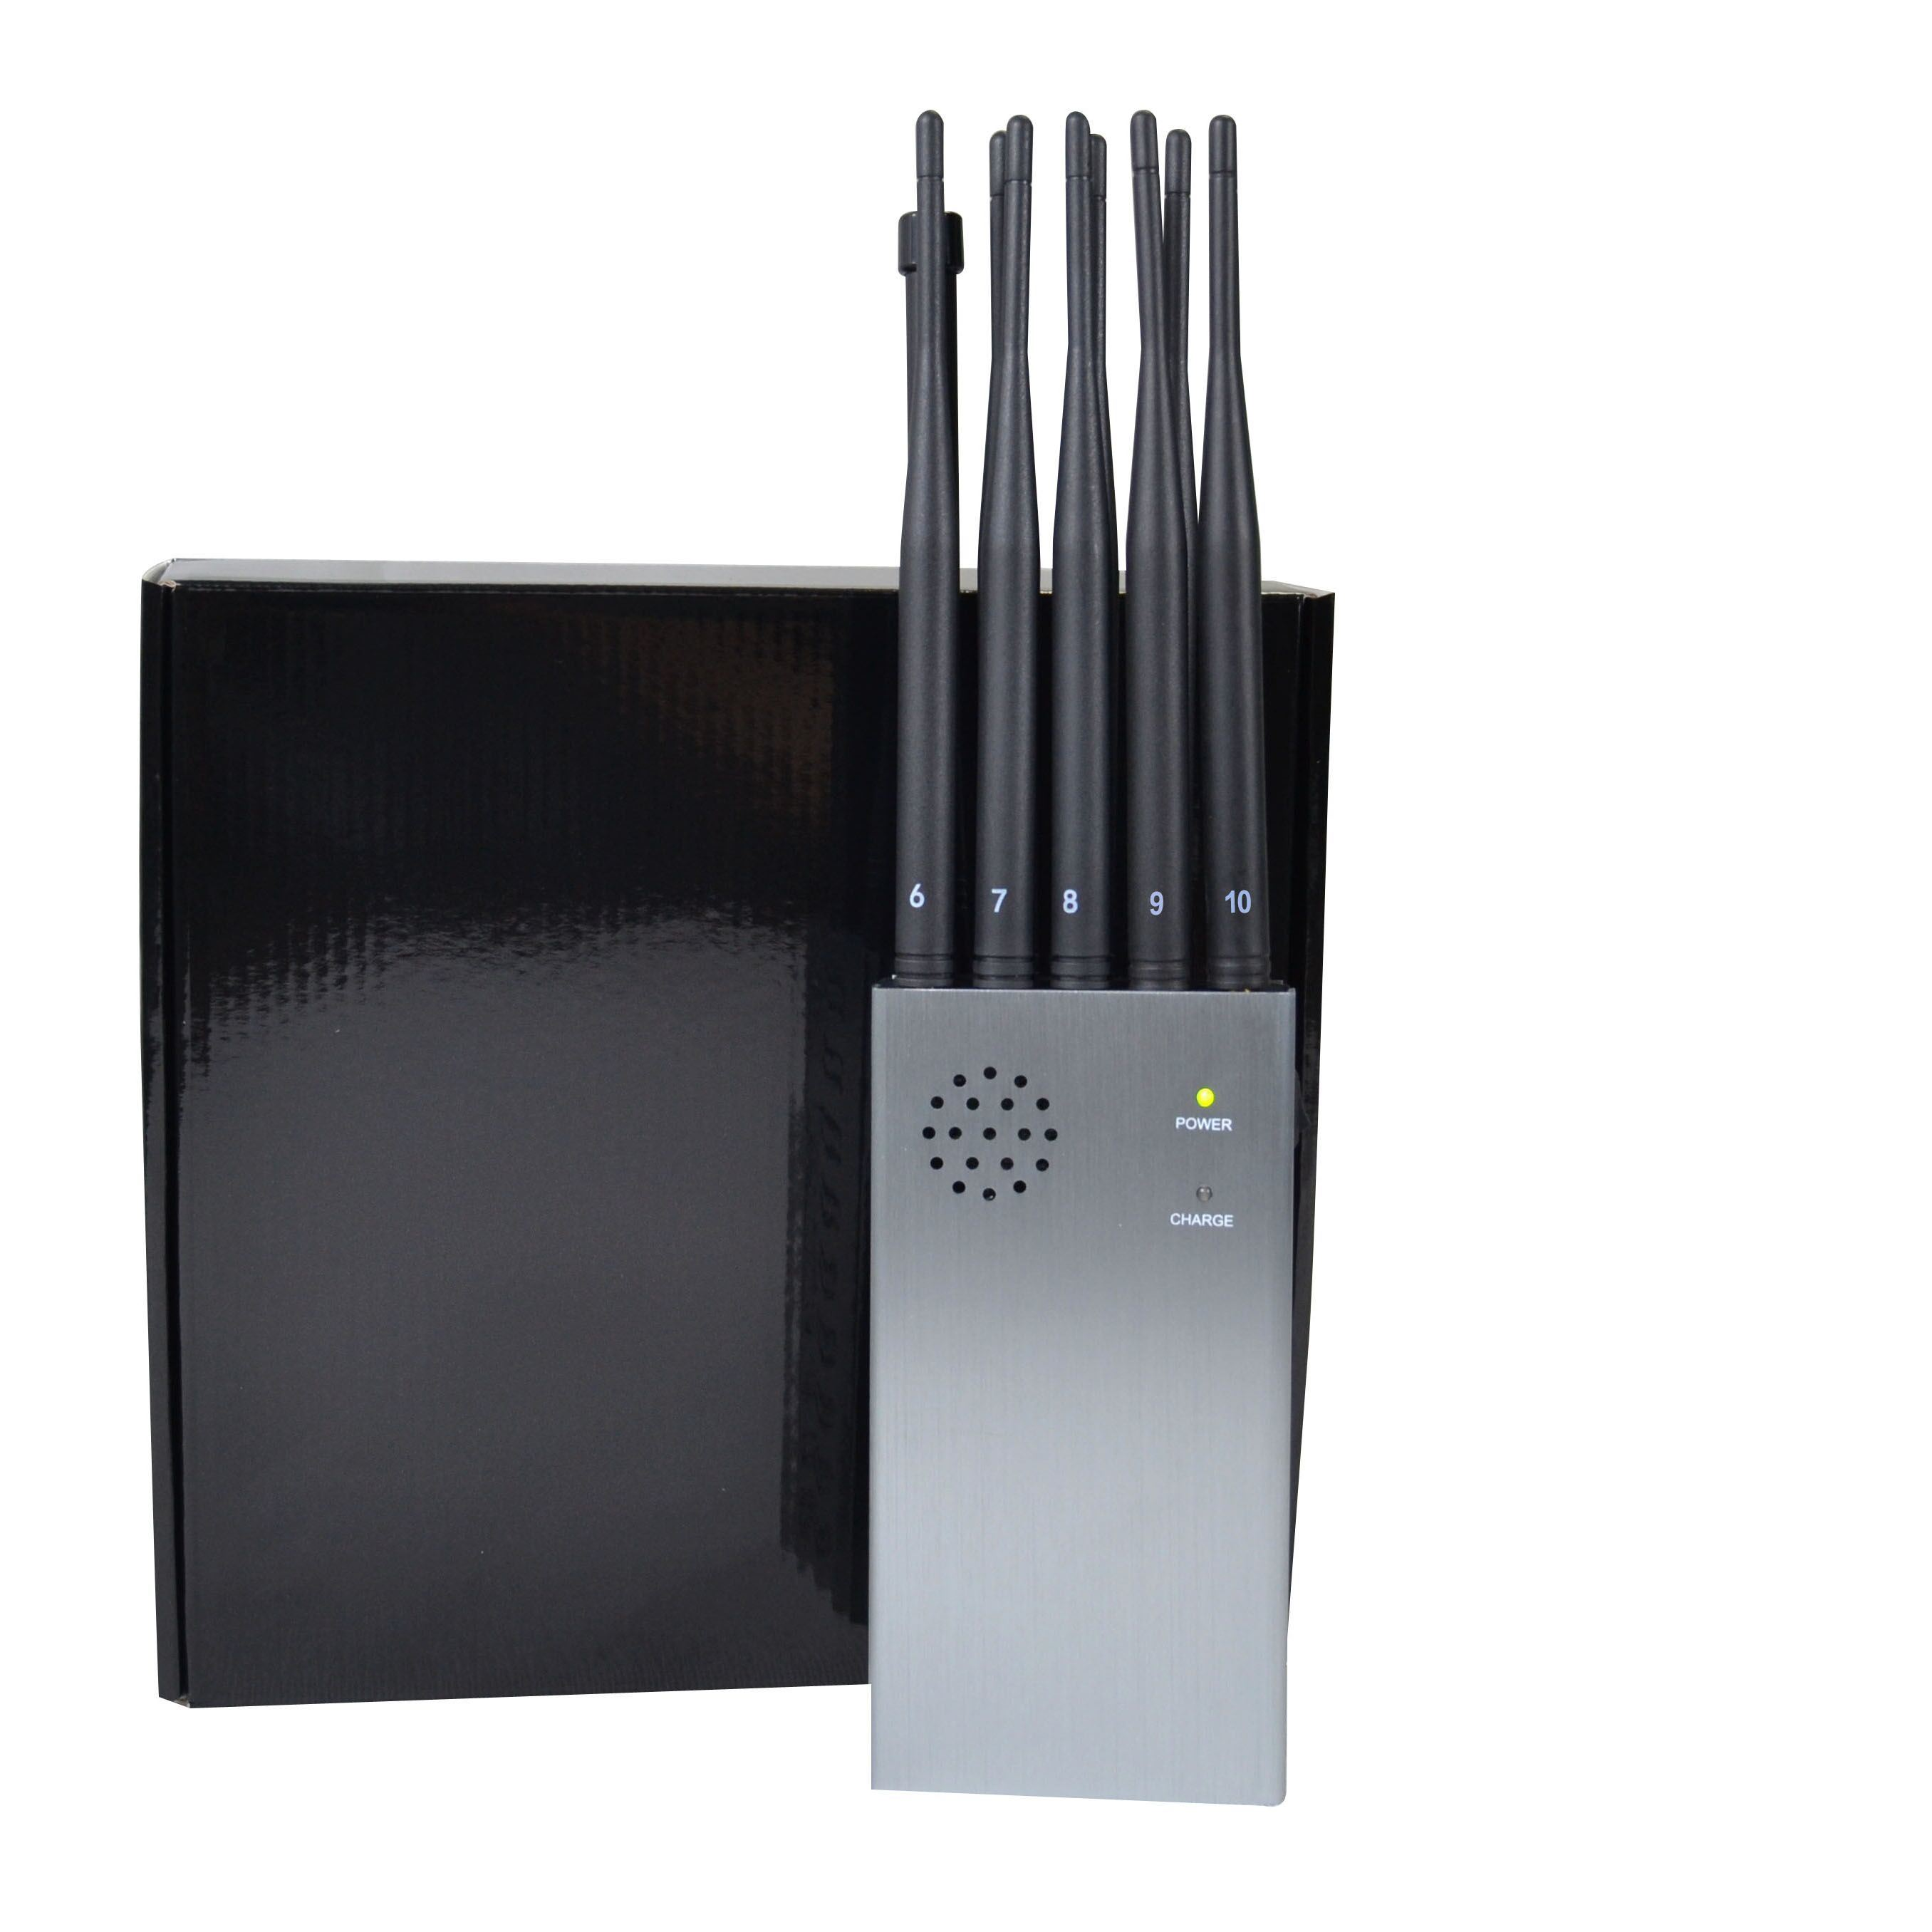 phone jammer london heathrow